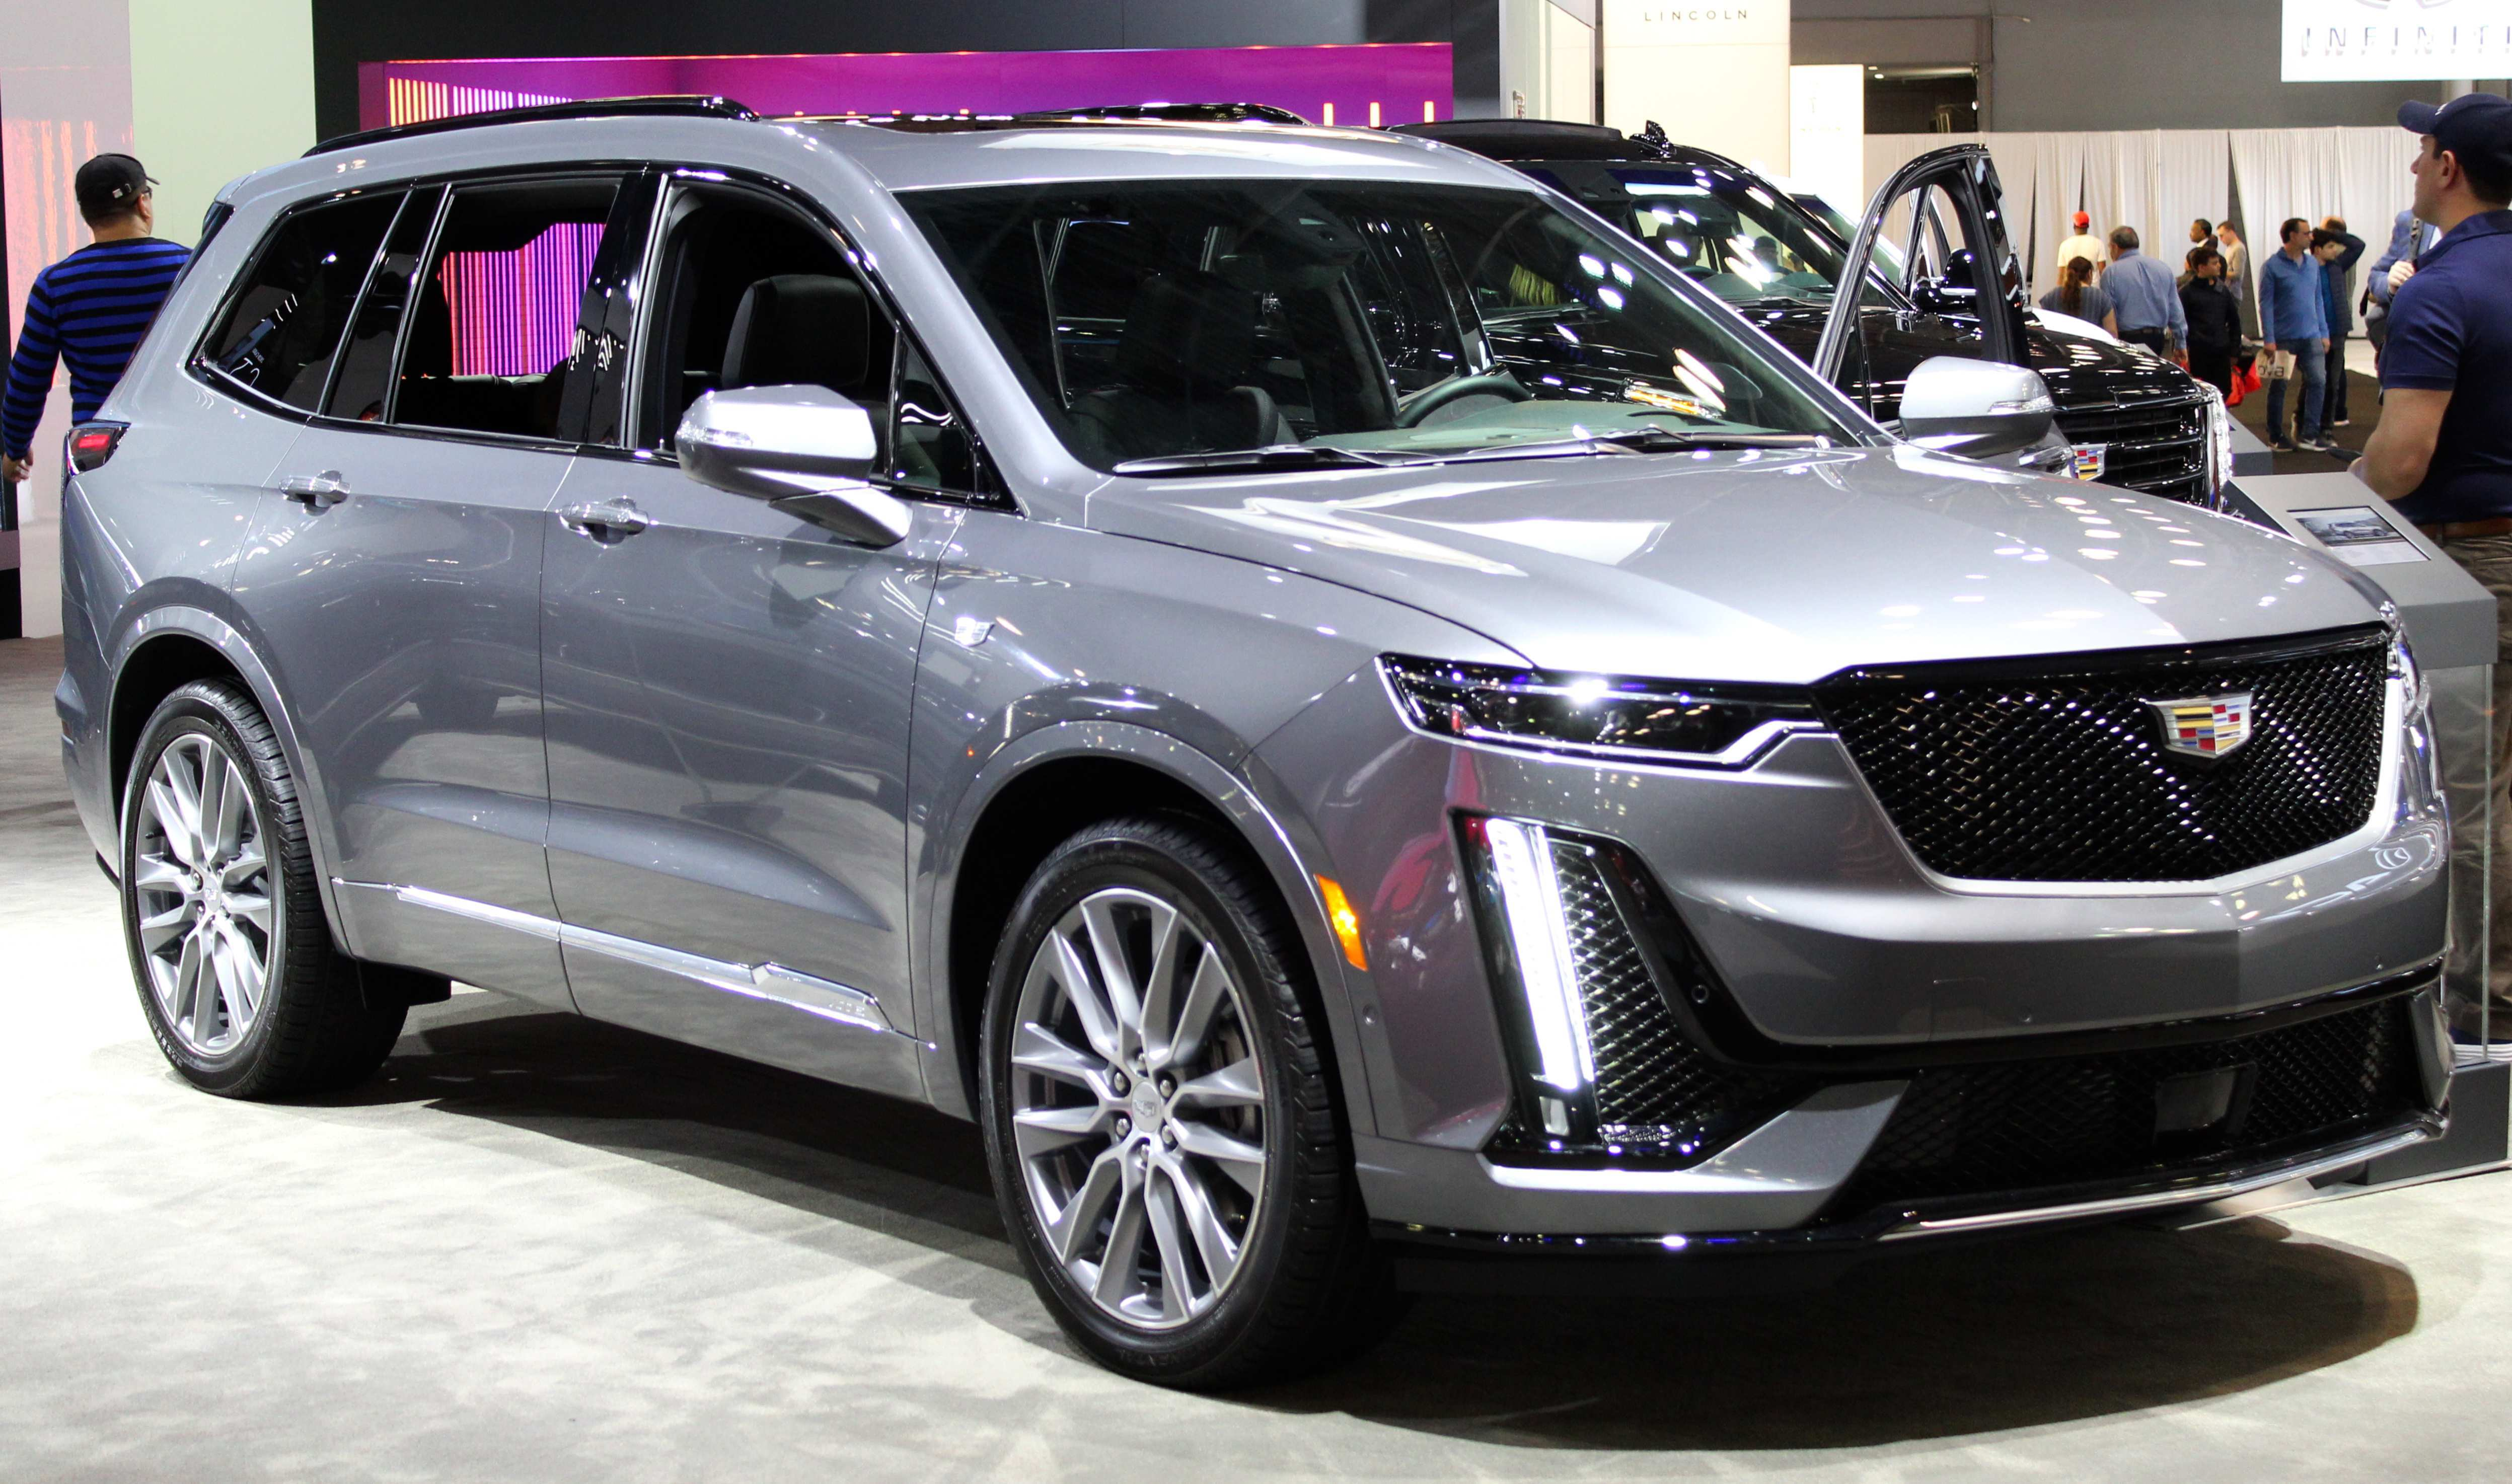 16 Concept of 2020 Cadillac Xt6 Gas Mileage Spesification for 2020 Cadillac Xt6 Gas Mileage